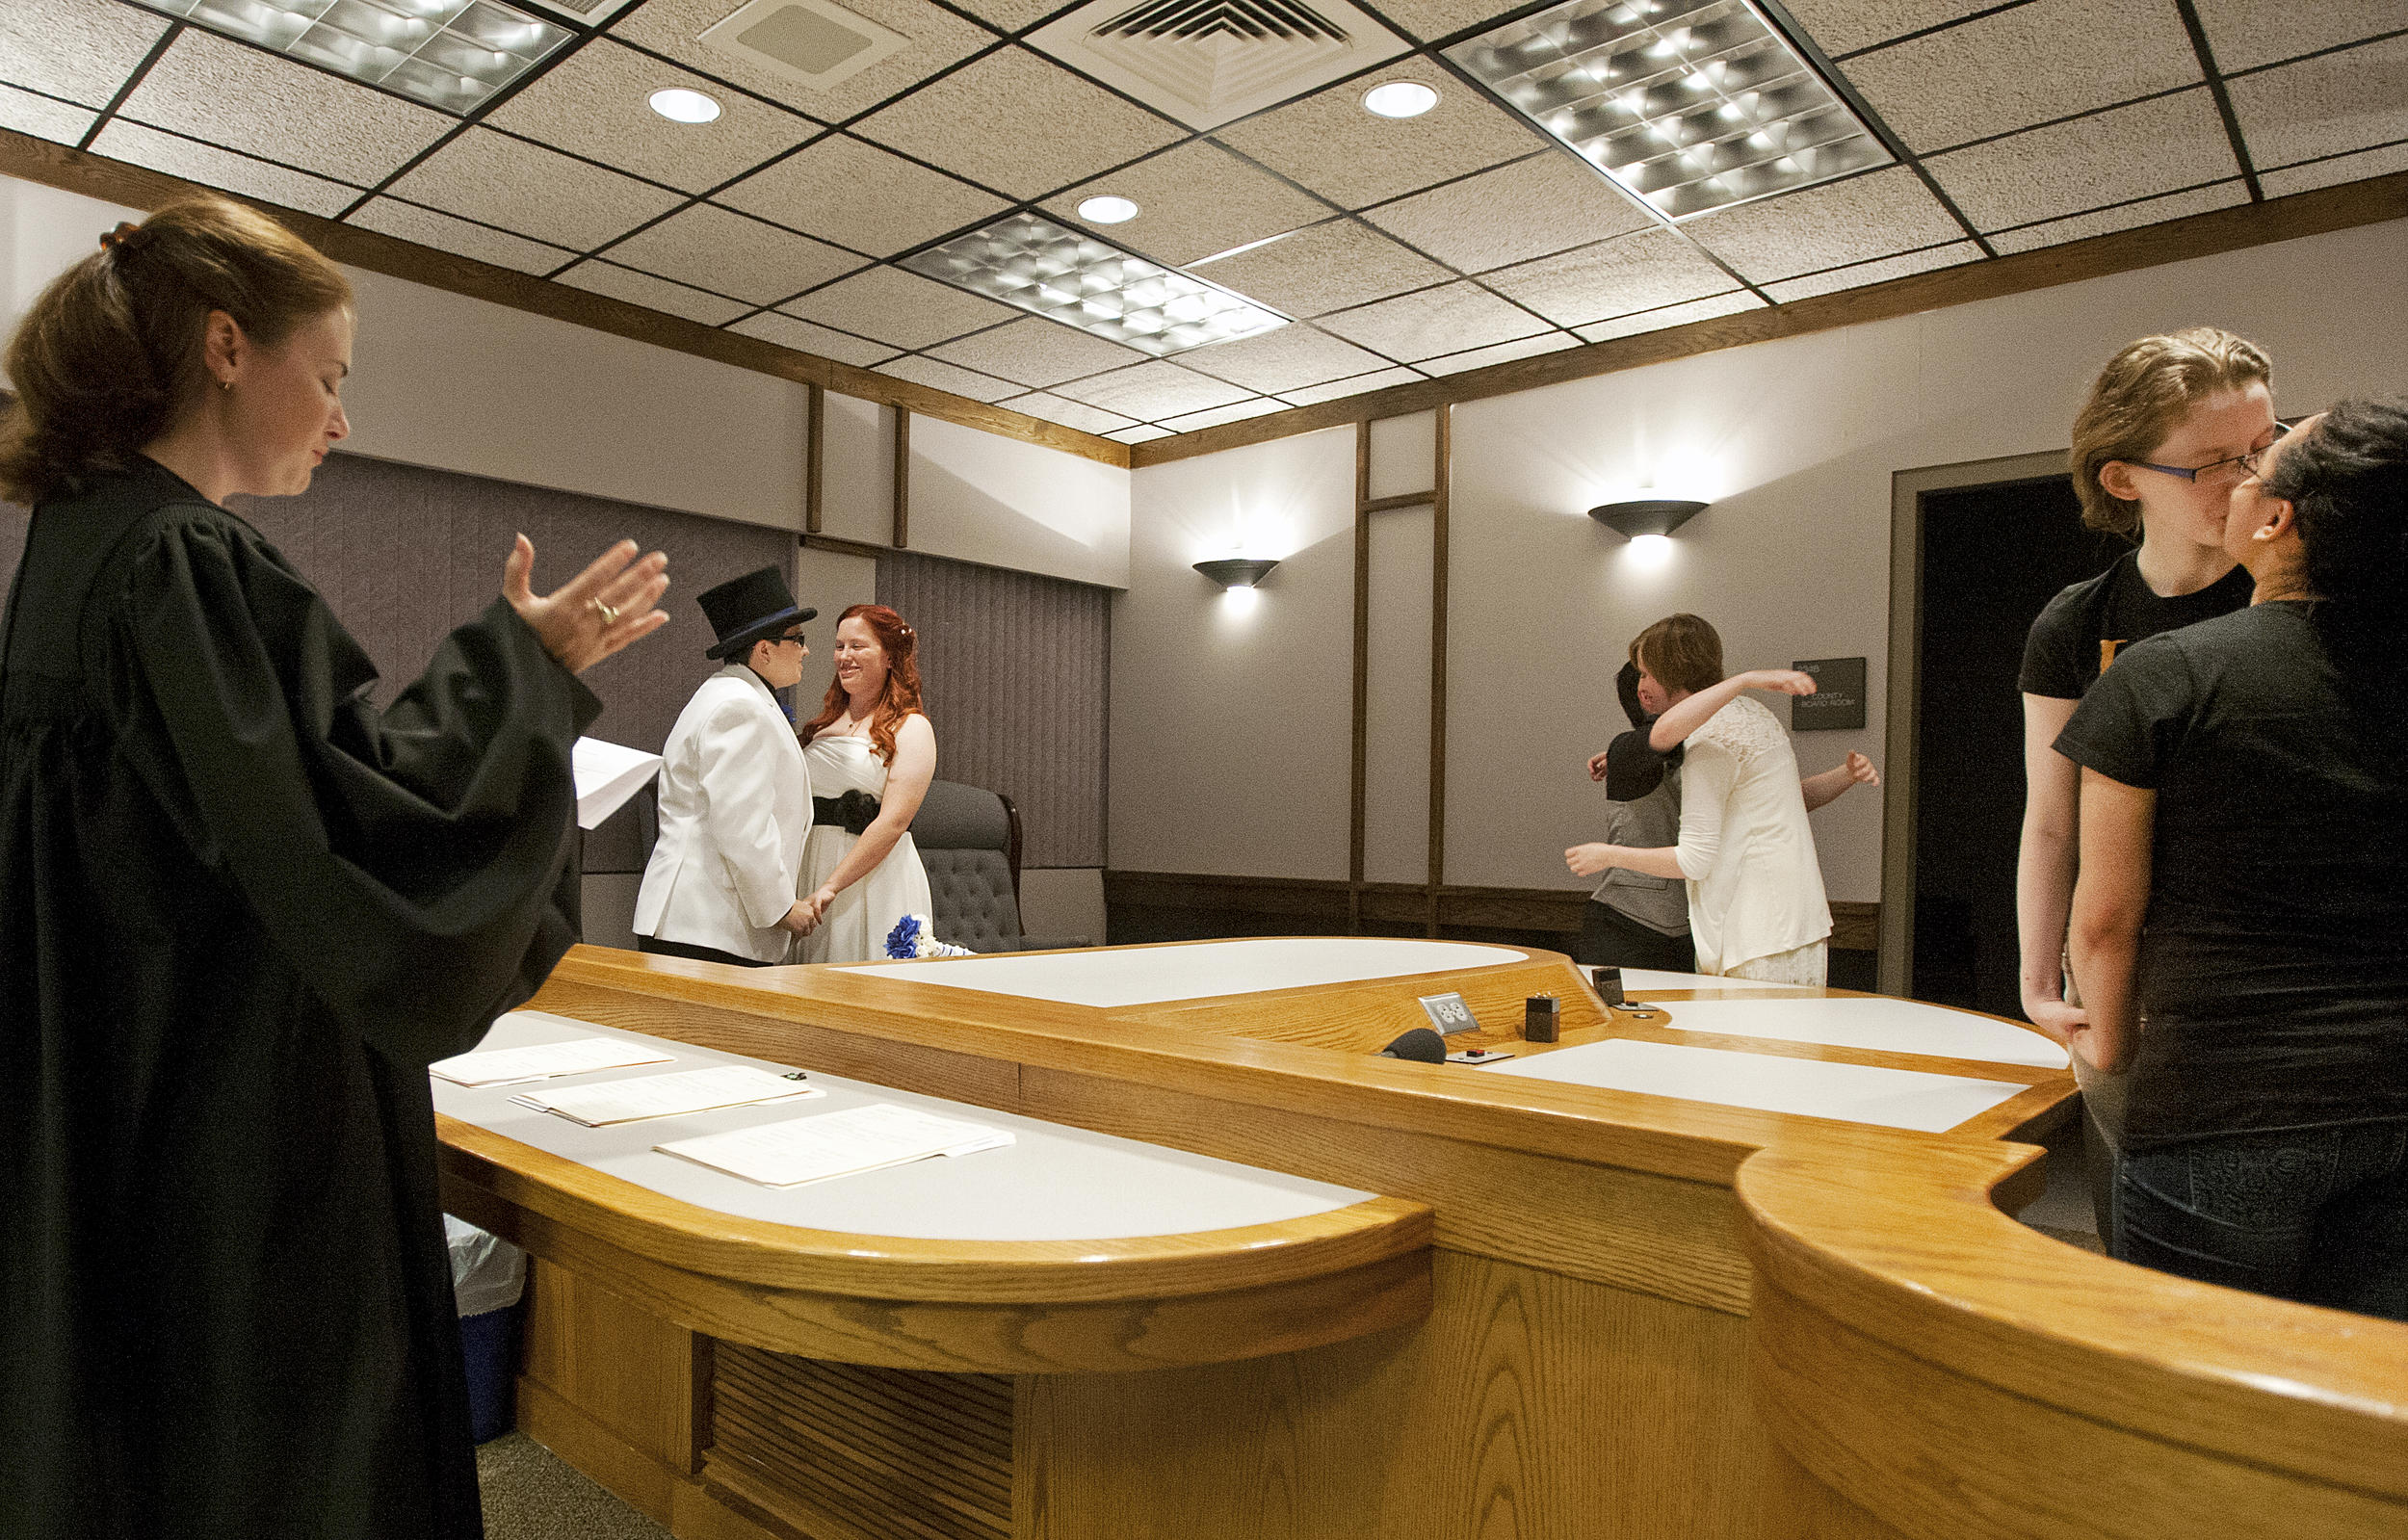 The first three same-sex couples to be legally wed in Polk County, Minn. share a midnight kiss at the Polk County district court in Crookston, Minn., August 1, 2013.